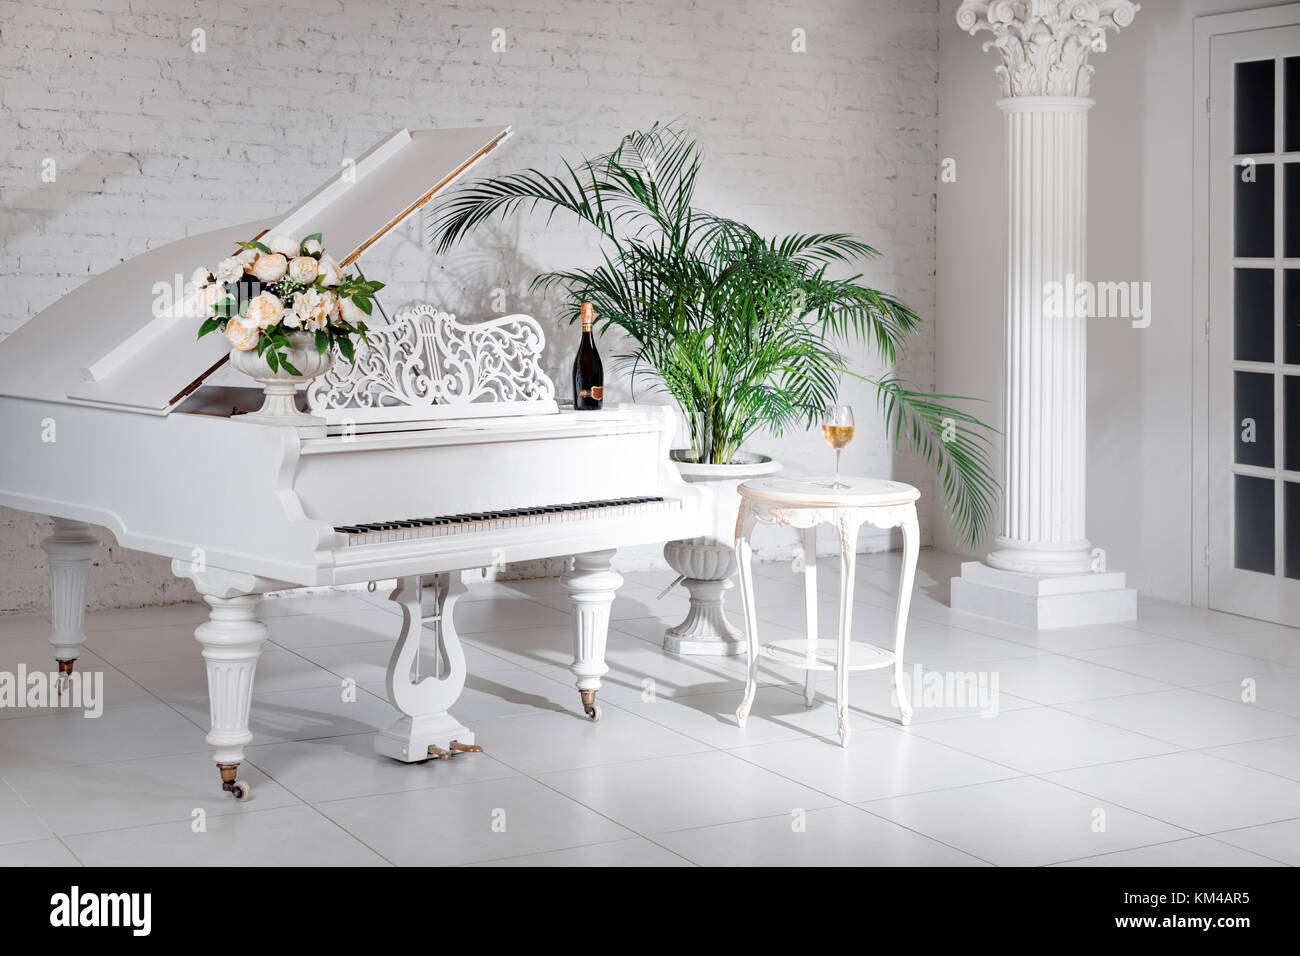 Grand Piano In Music Room Stock Photos & Grand Piano In Music Room ...